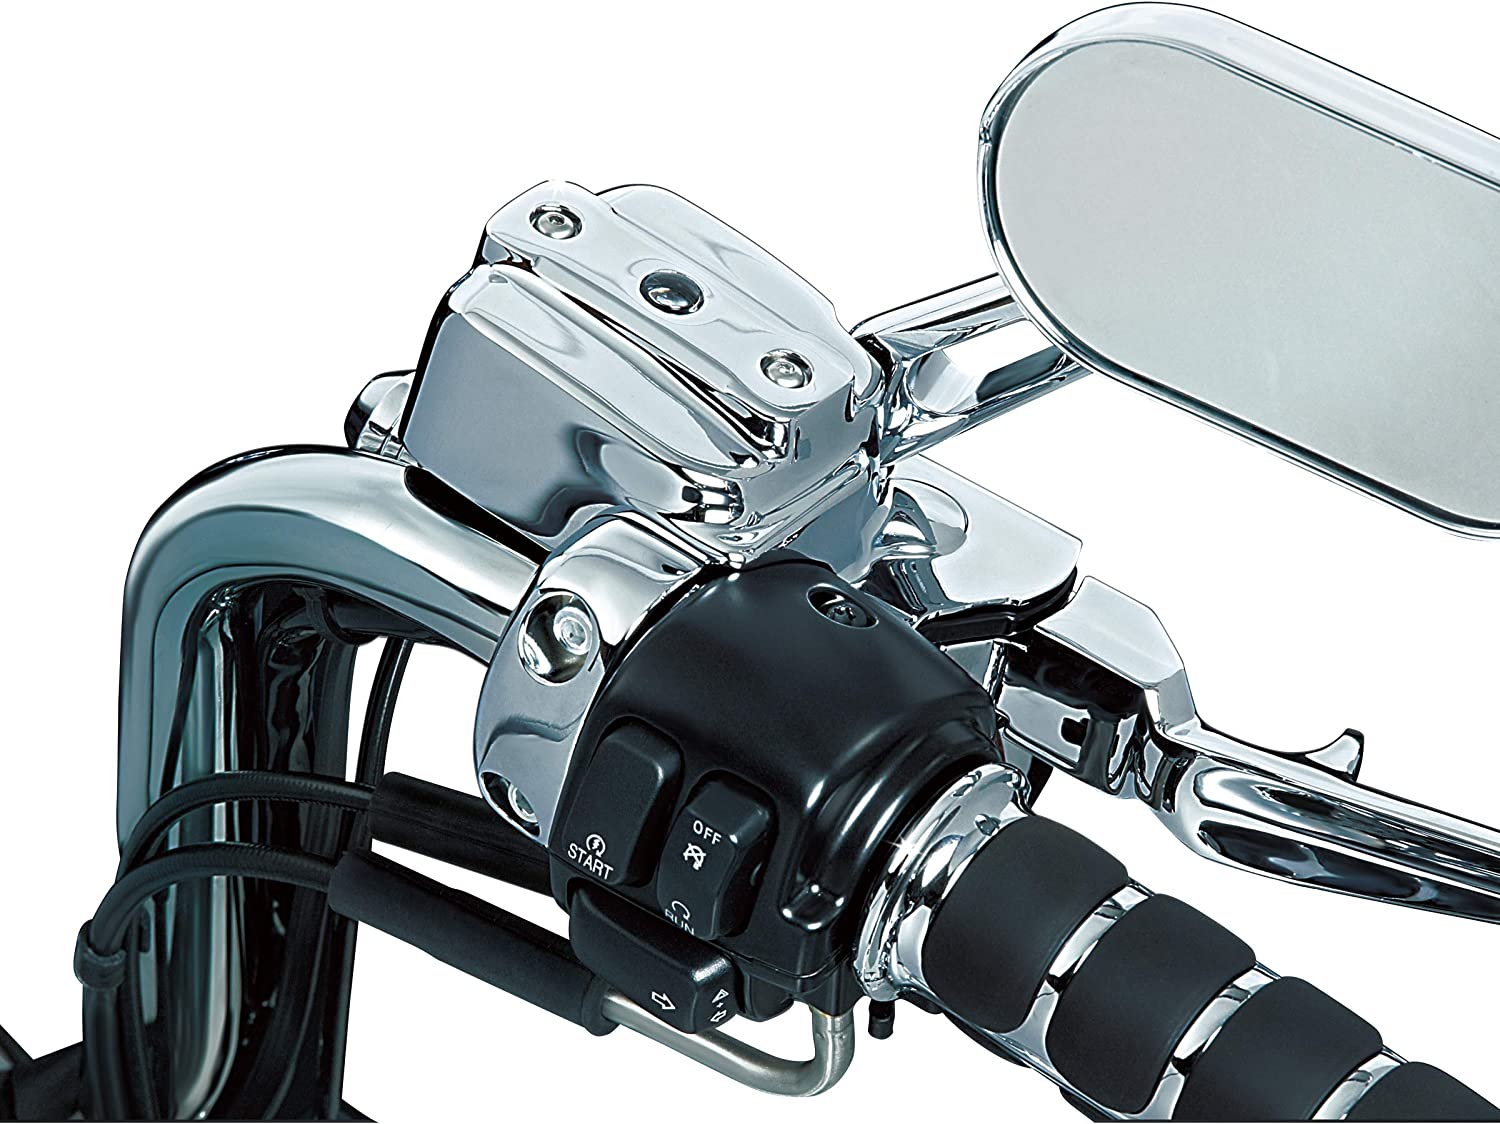 Single Disc Complete Chrome Replacement Brake and Clutch Control Dress-Up Kit for 1996-2017 Harley-Davidson Motorcycles Kuryakyn 9119 Motorcycle Handlebar Accessory